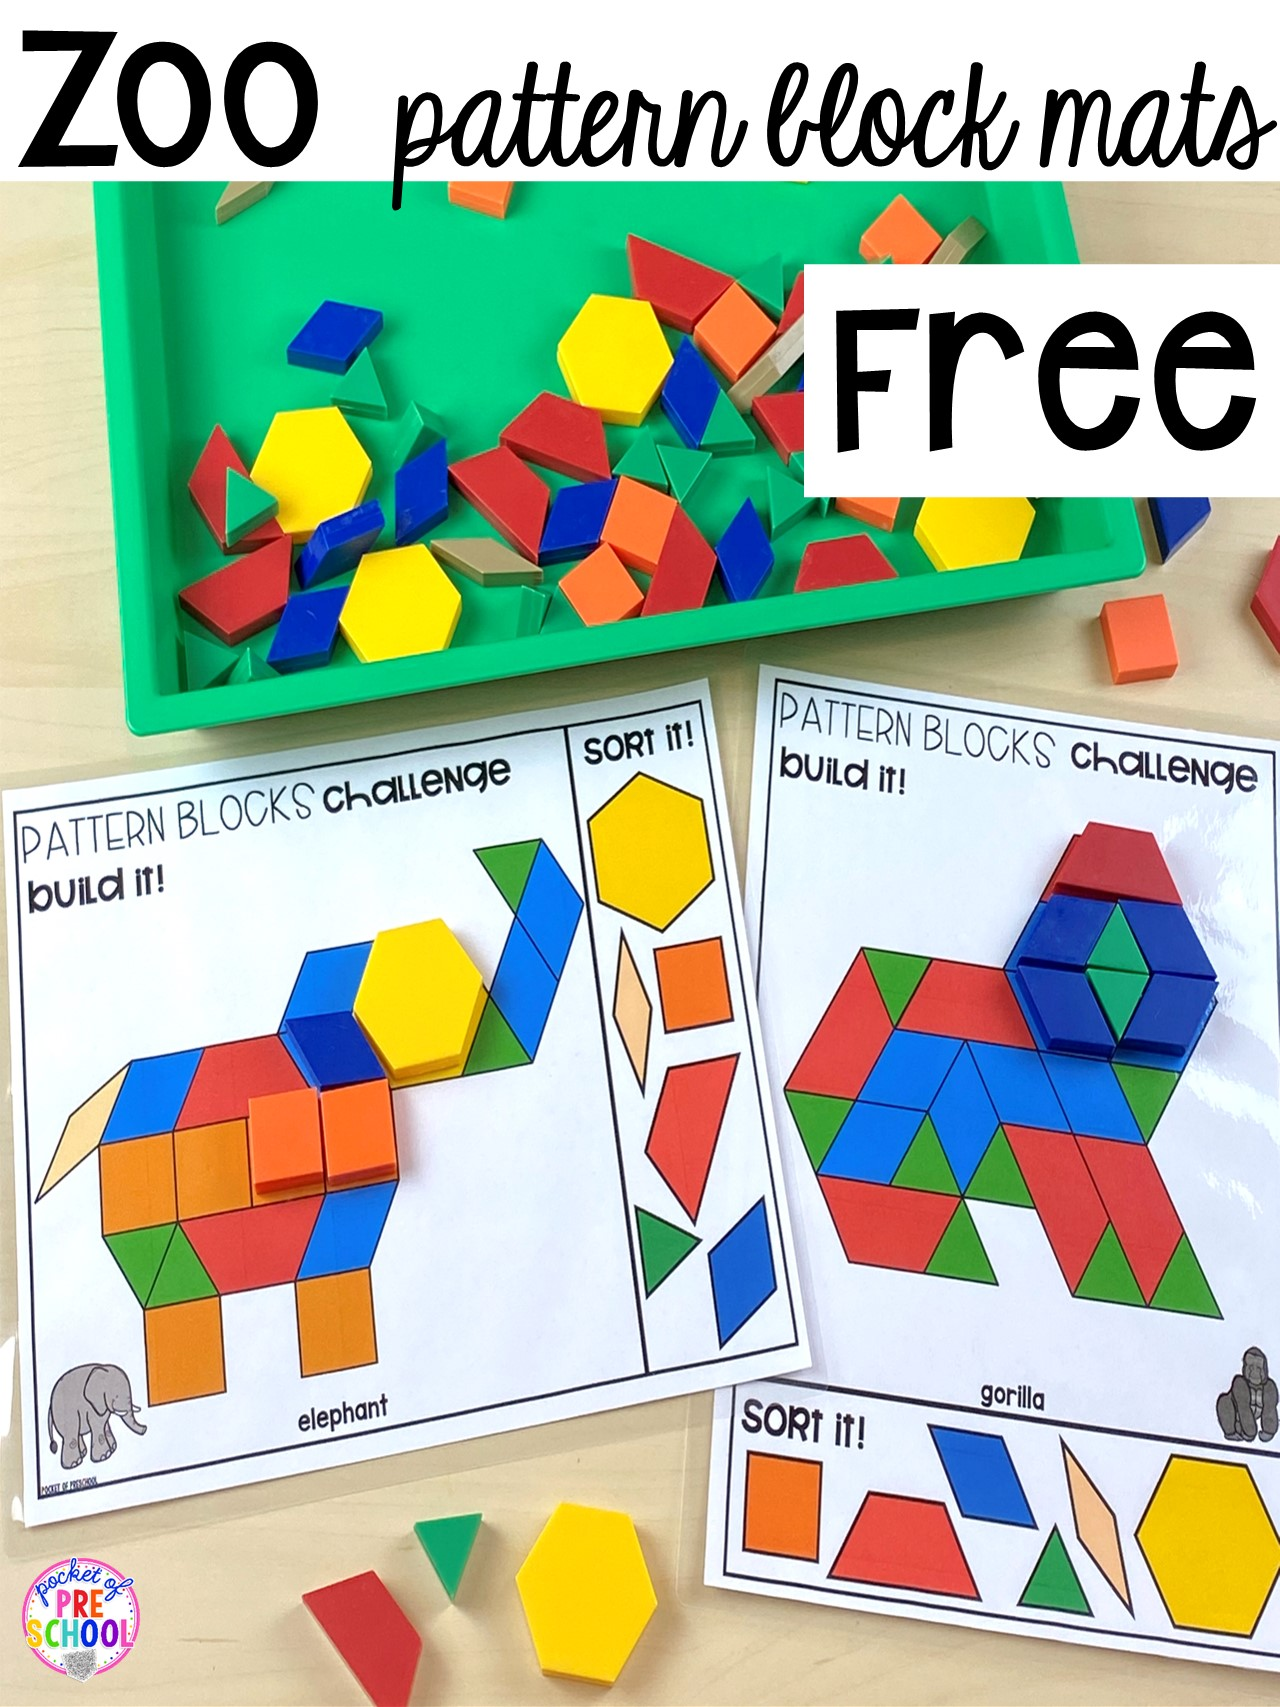 FREE Zoo pattern block mats to develop spacial sense and explore making pictures with shapes. #shapes #preschool #zootheme #patternblocks